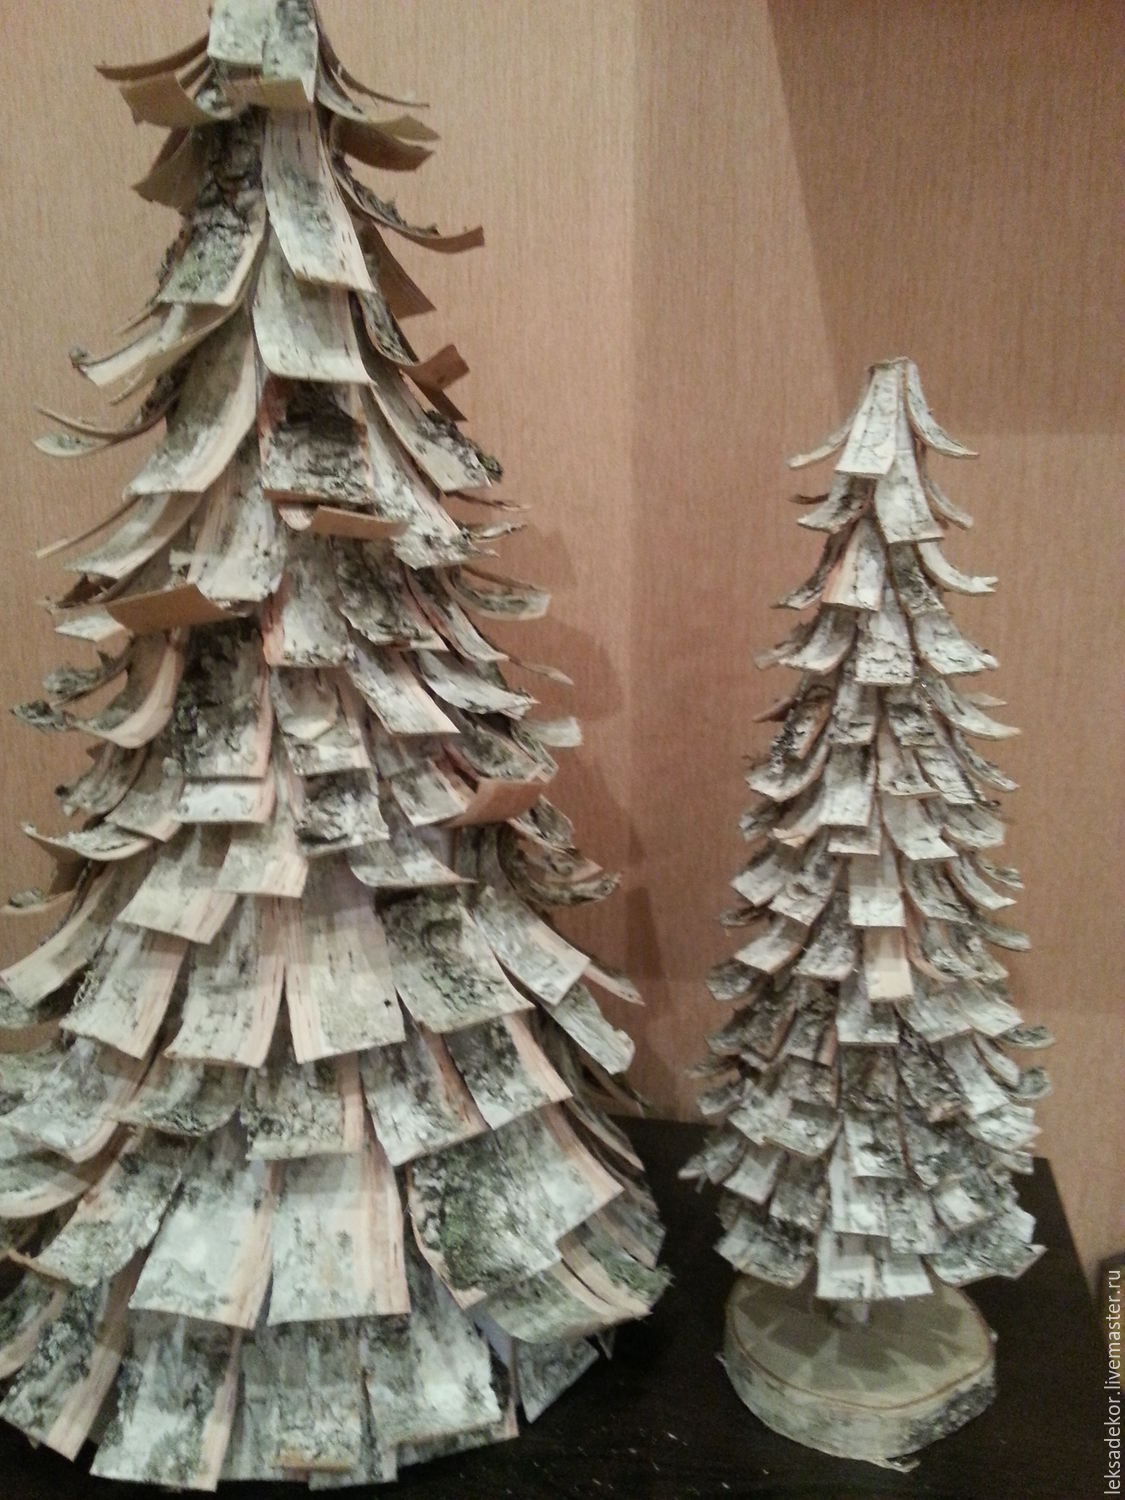 christmas tree made of birch bark to create a festive atmosphere in the interior